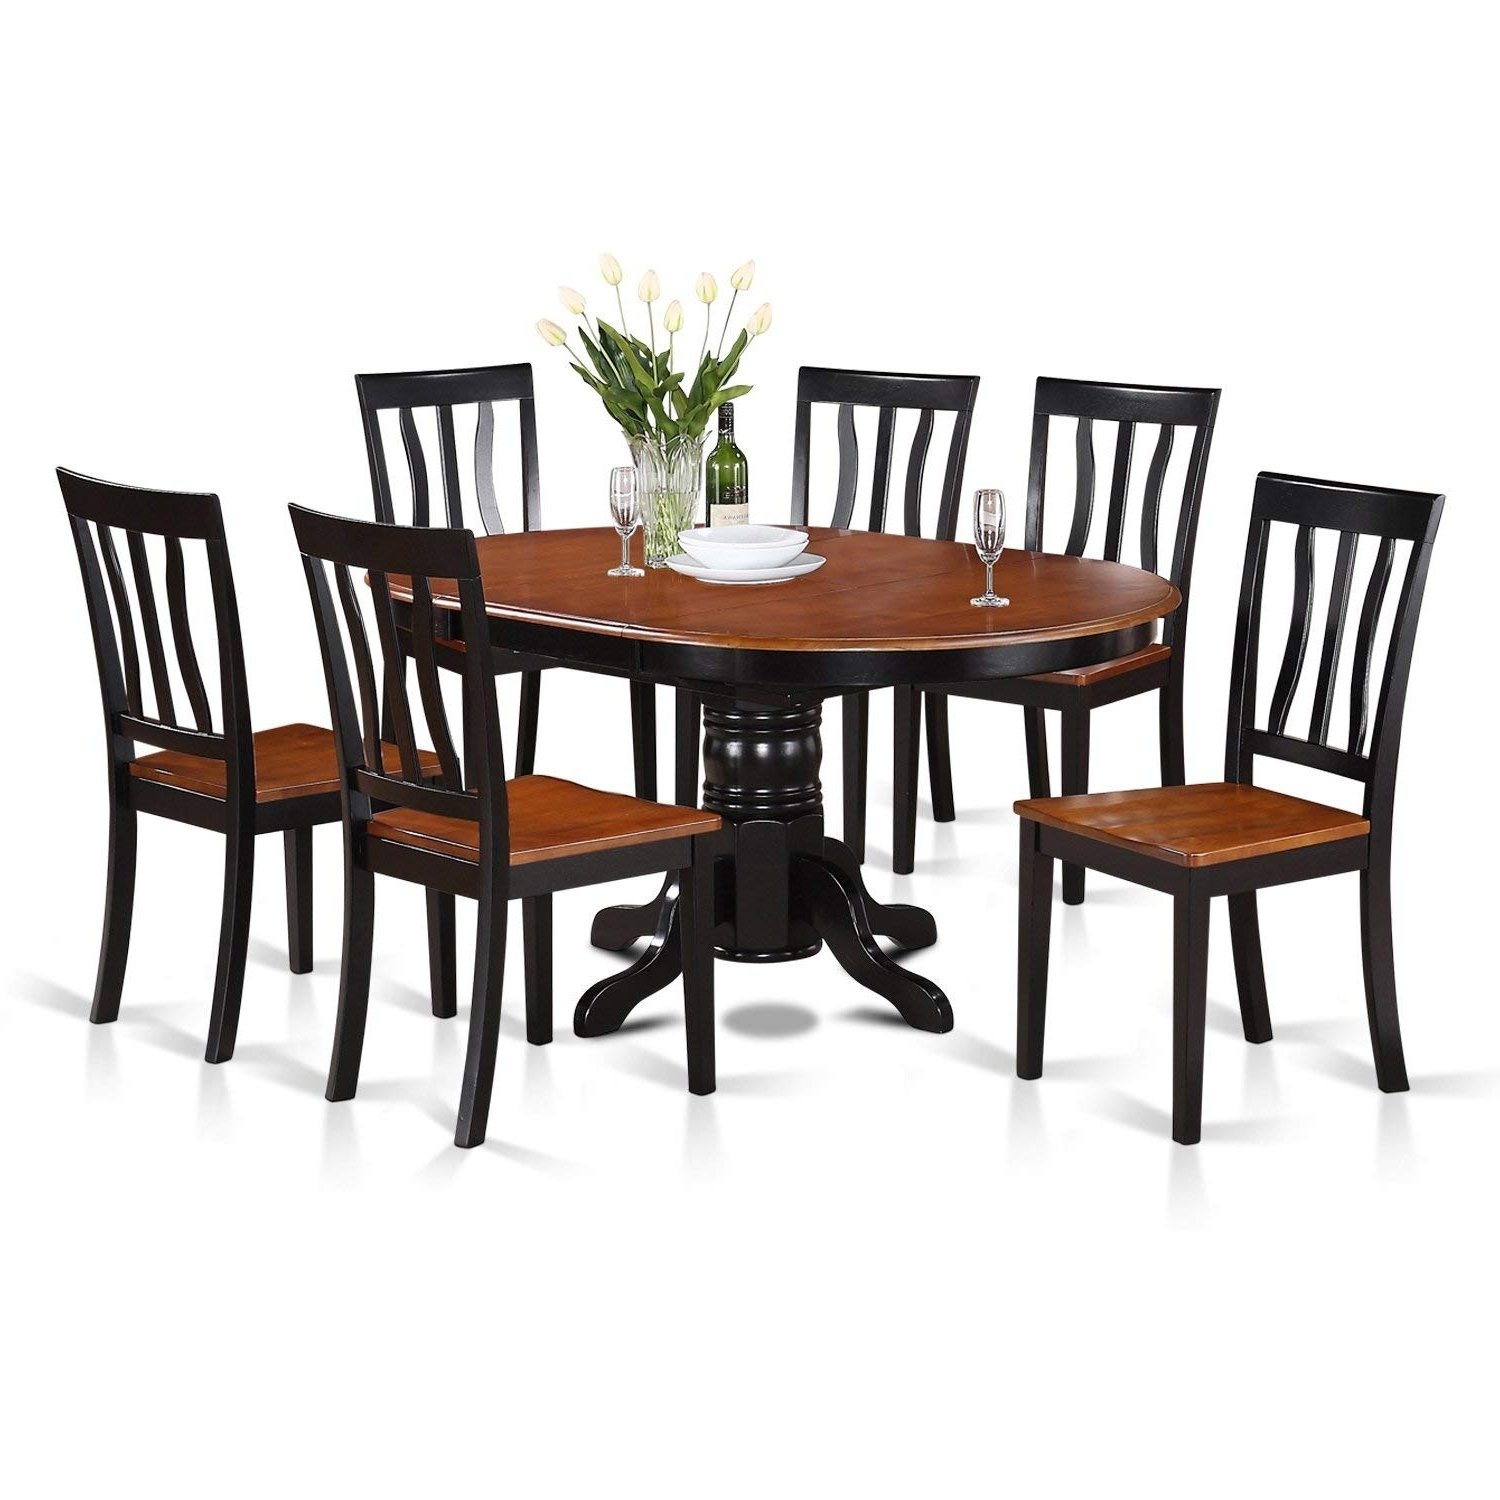 2018 Jaxon Grey 5 Piece Round Extension Dining Sets With Wood Chairs With Amazon: East West Furniture Avat7 Blk W 7 Piece Dining Table Set (View 1 of 25)